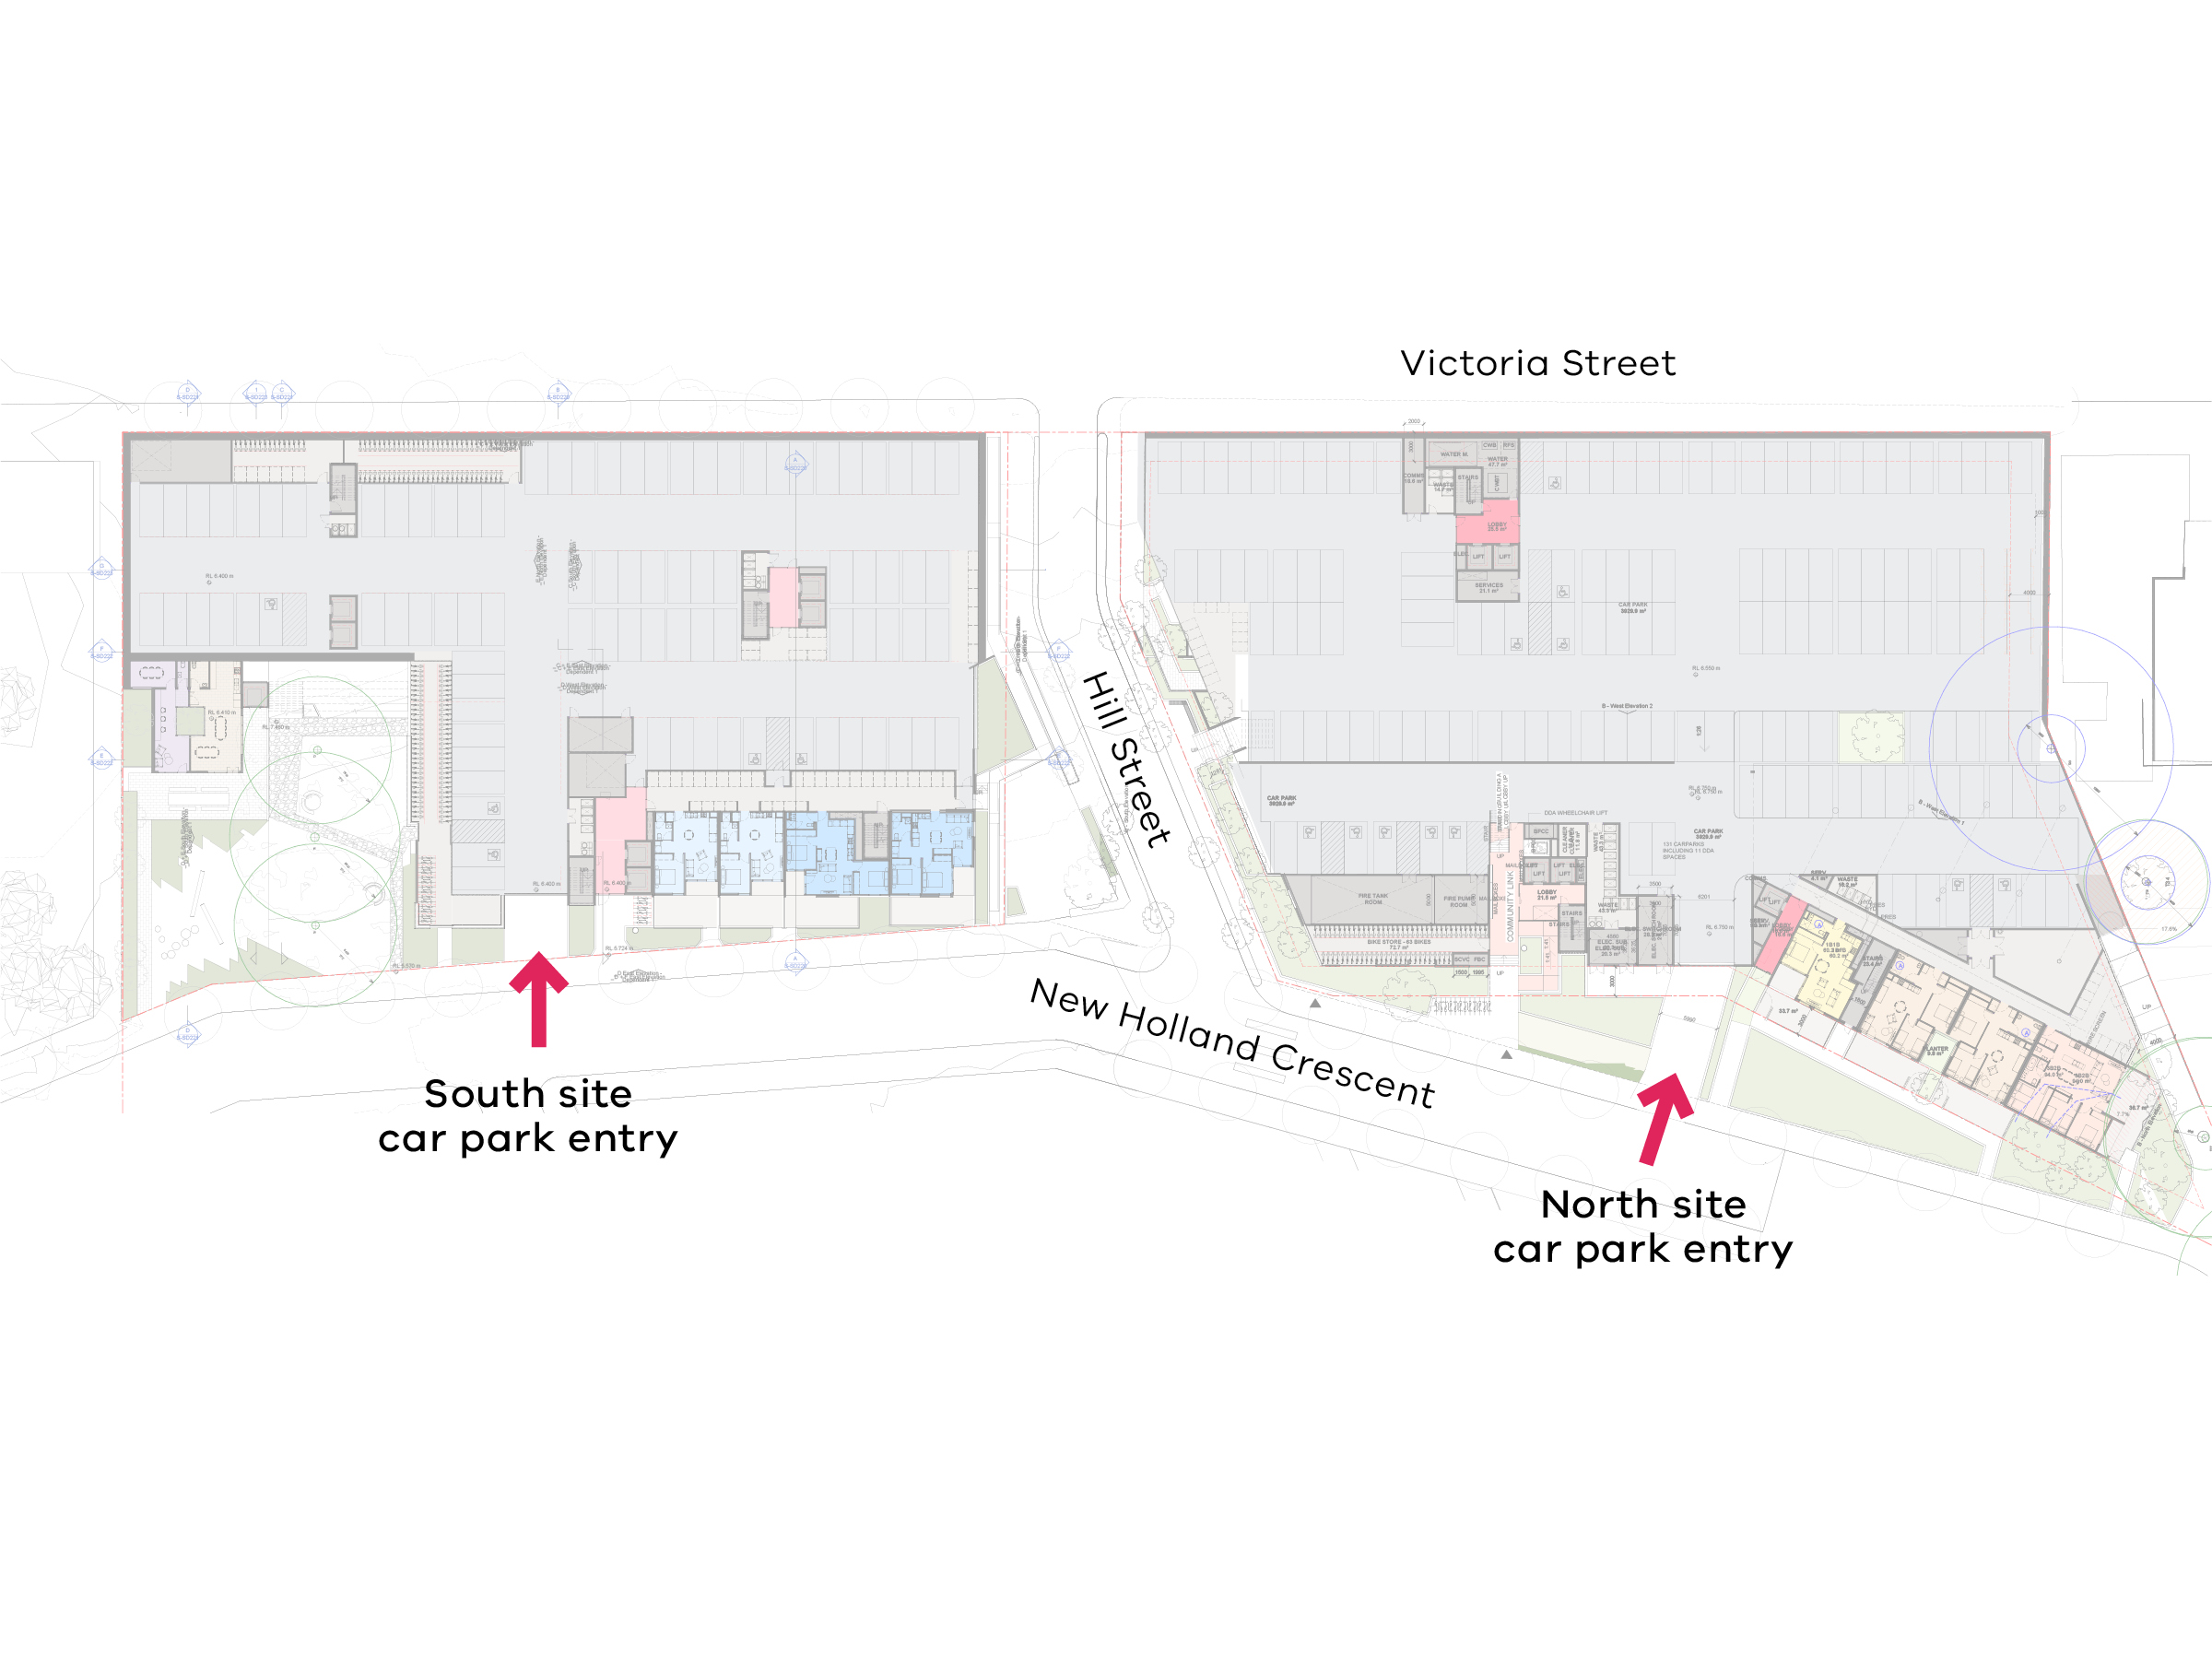 Diagram that shows the parking facilities on the new development. Access to both the north site and south site car parks is from New Holland Crescent.